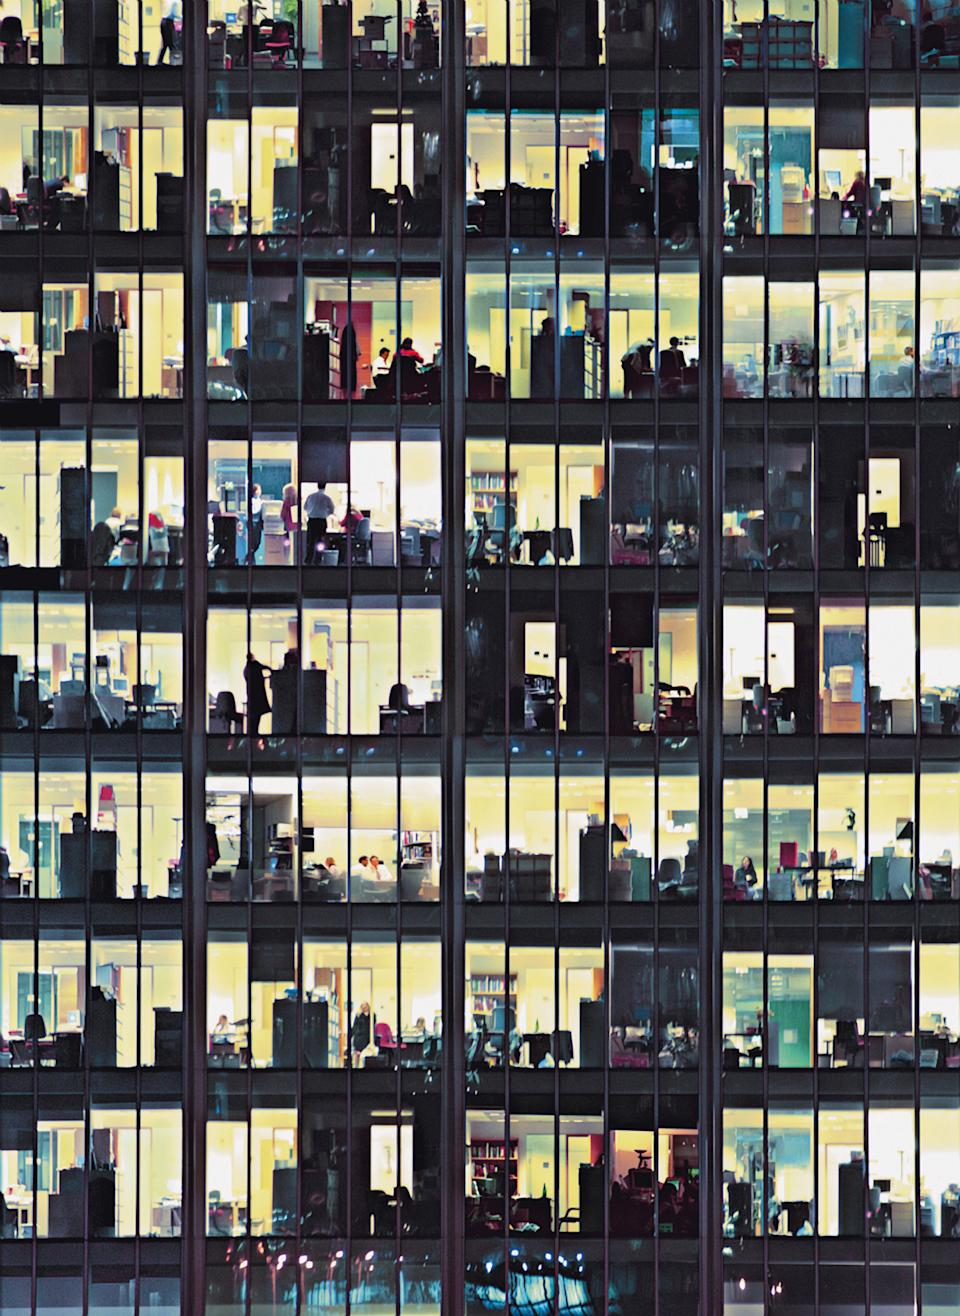 An office building buzzing with activity after dark.